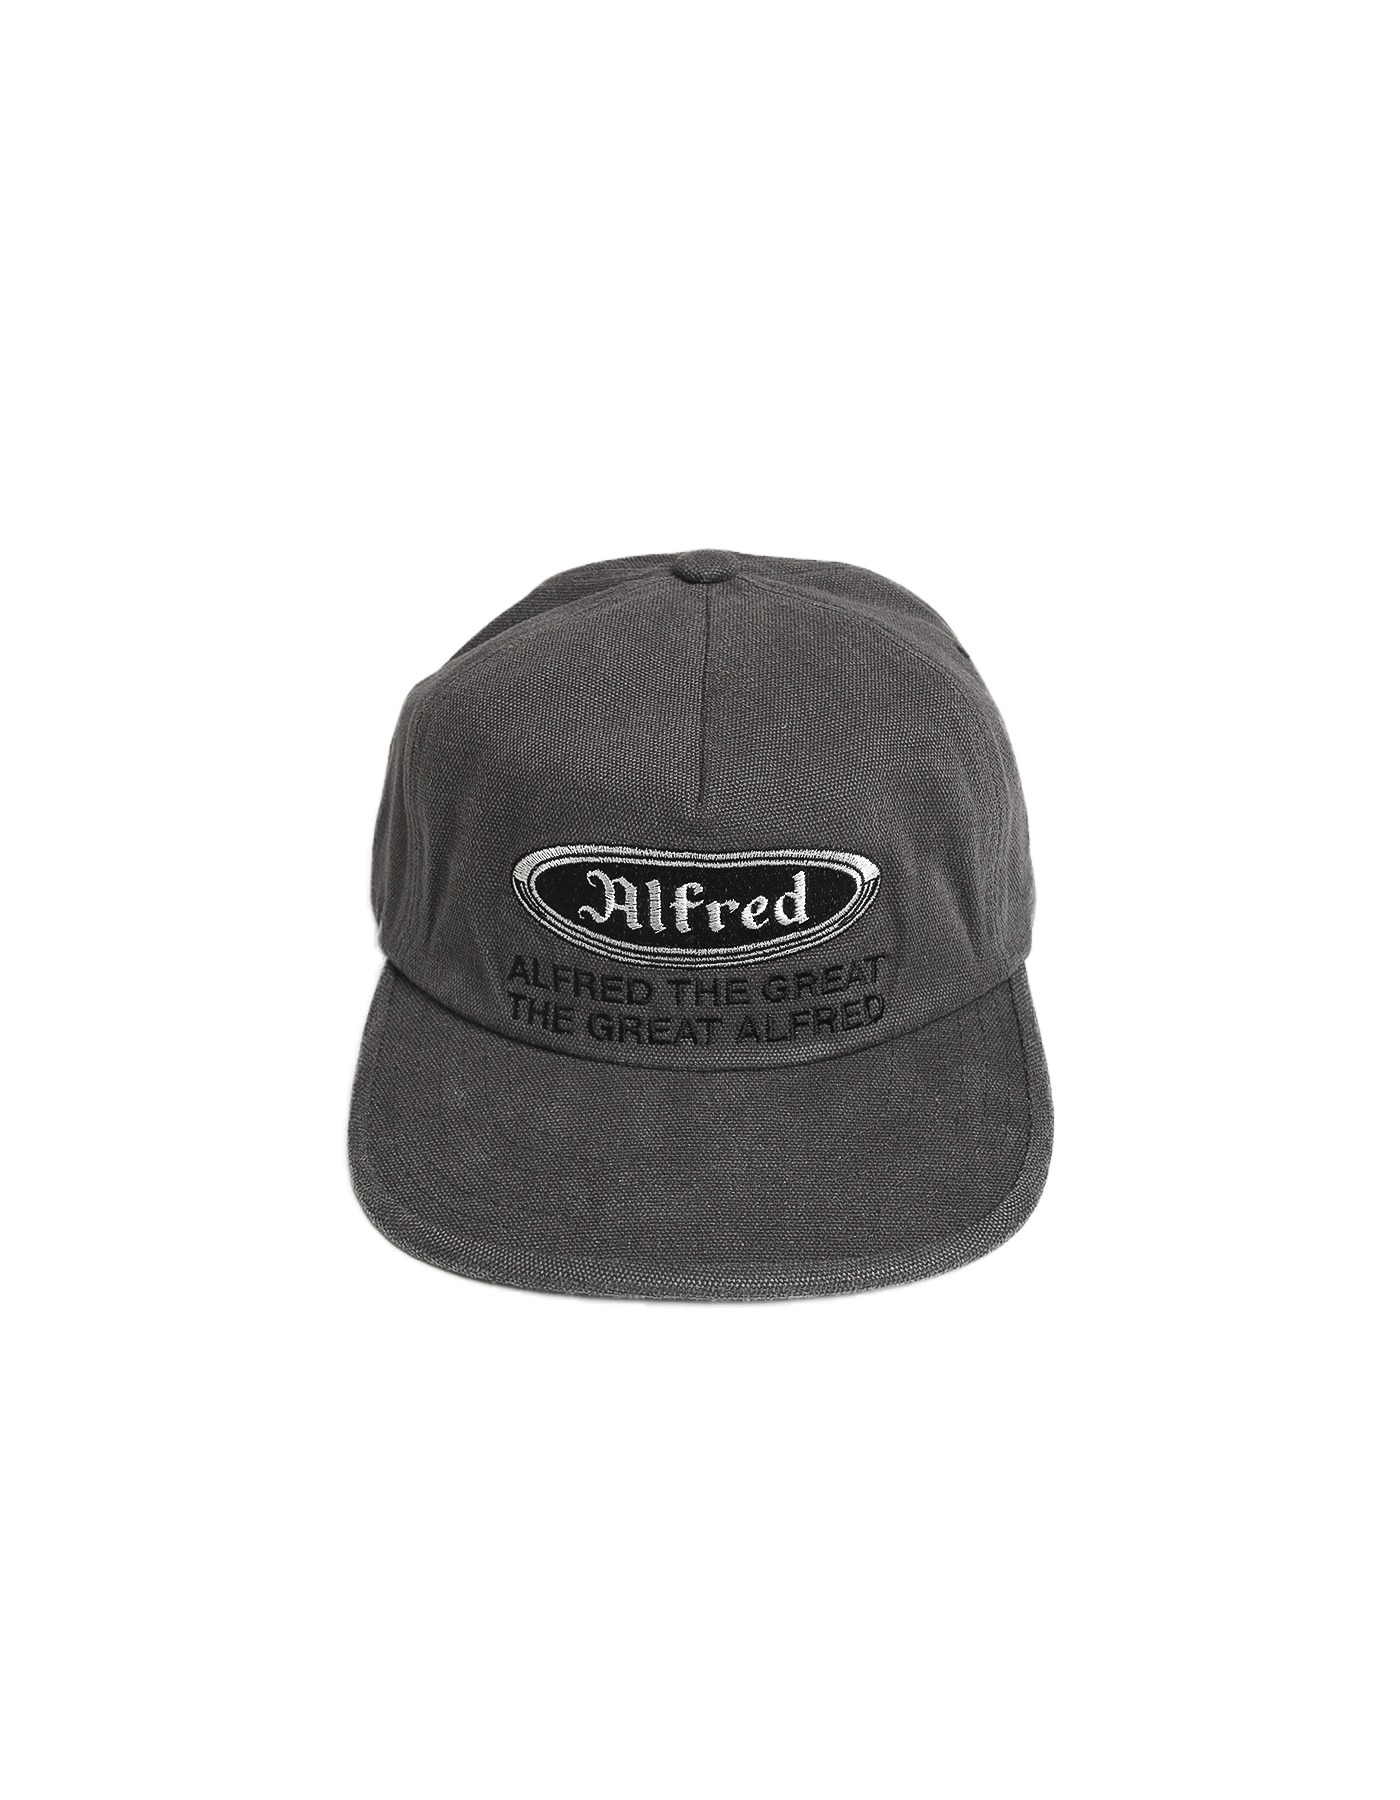 FRED WORK CAP / CHARCOAL